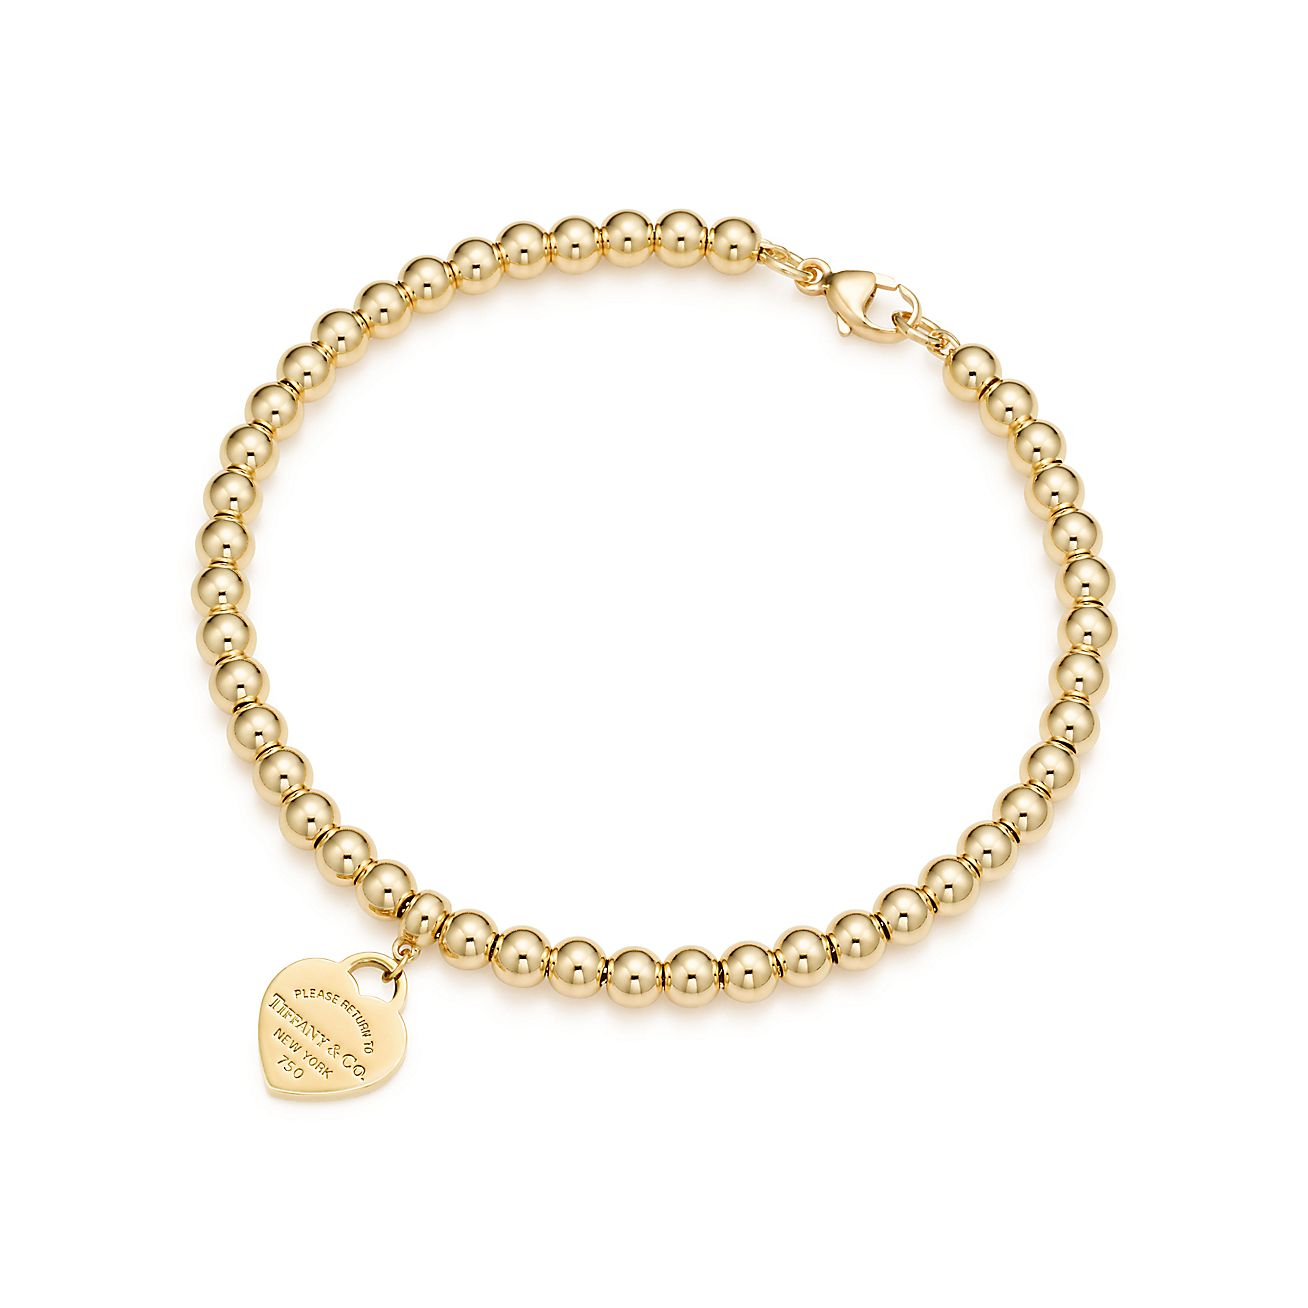 This is on my Wish List: Brazalete con cuentas y placa mini estilo corazón en oro de 18 quilates, mediano | Tiffany & Co.